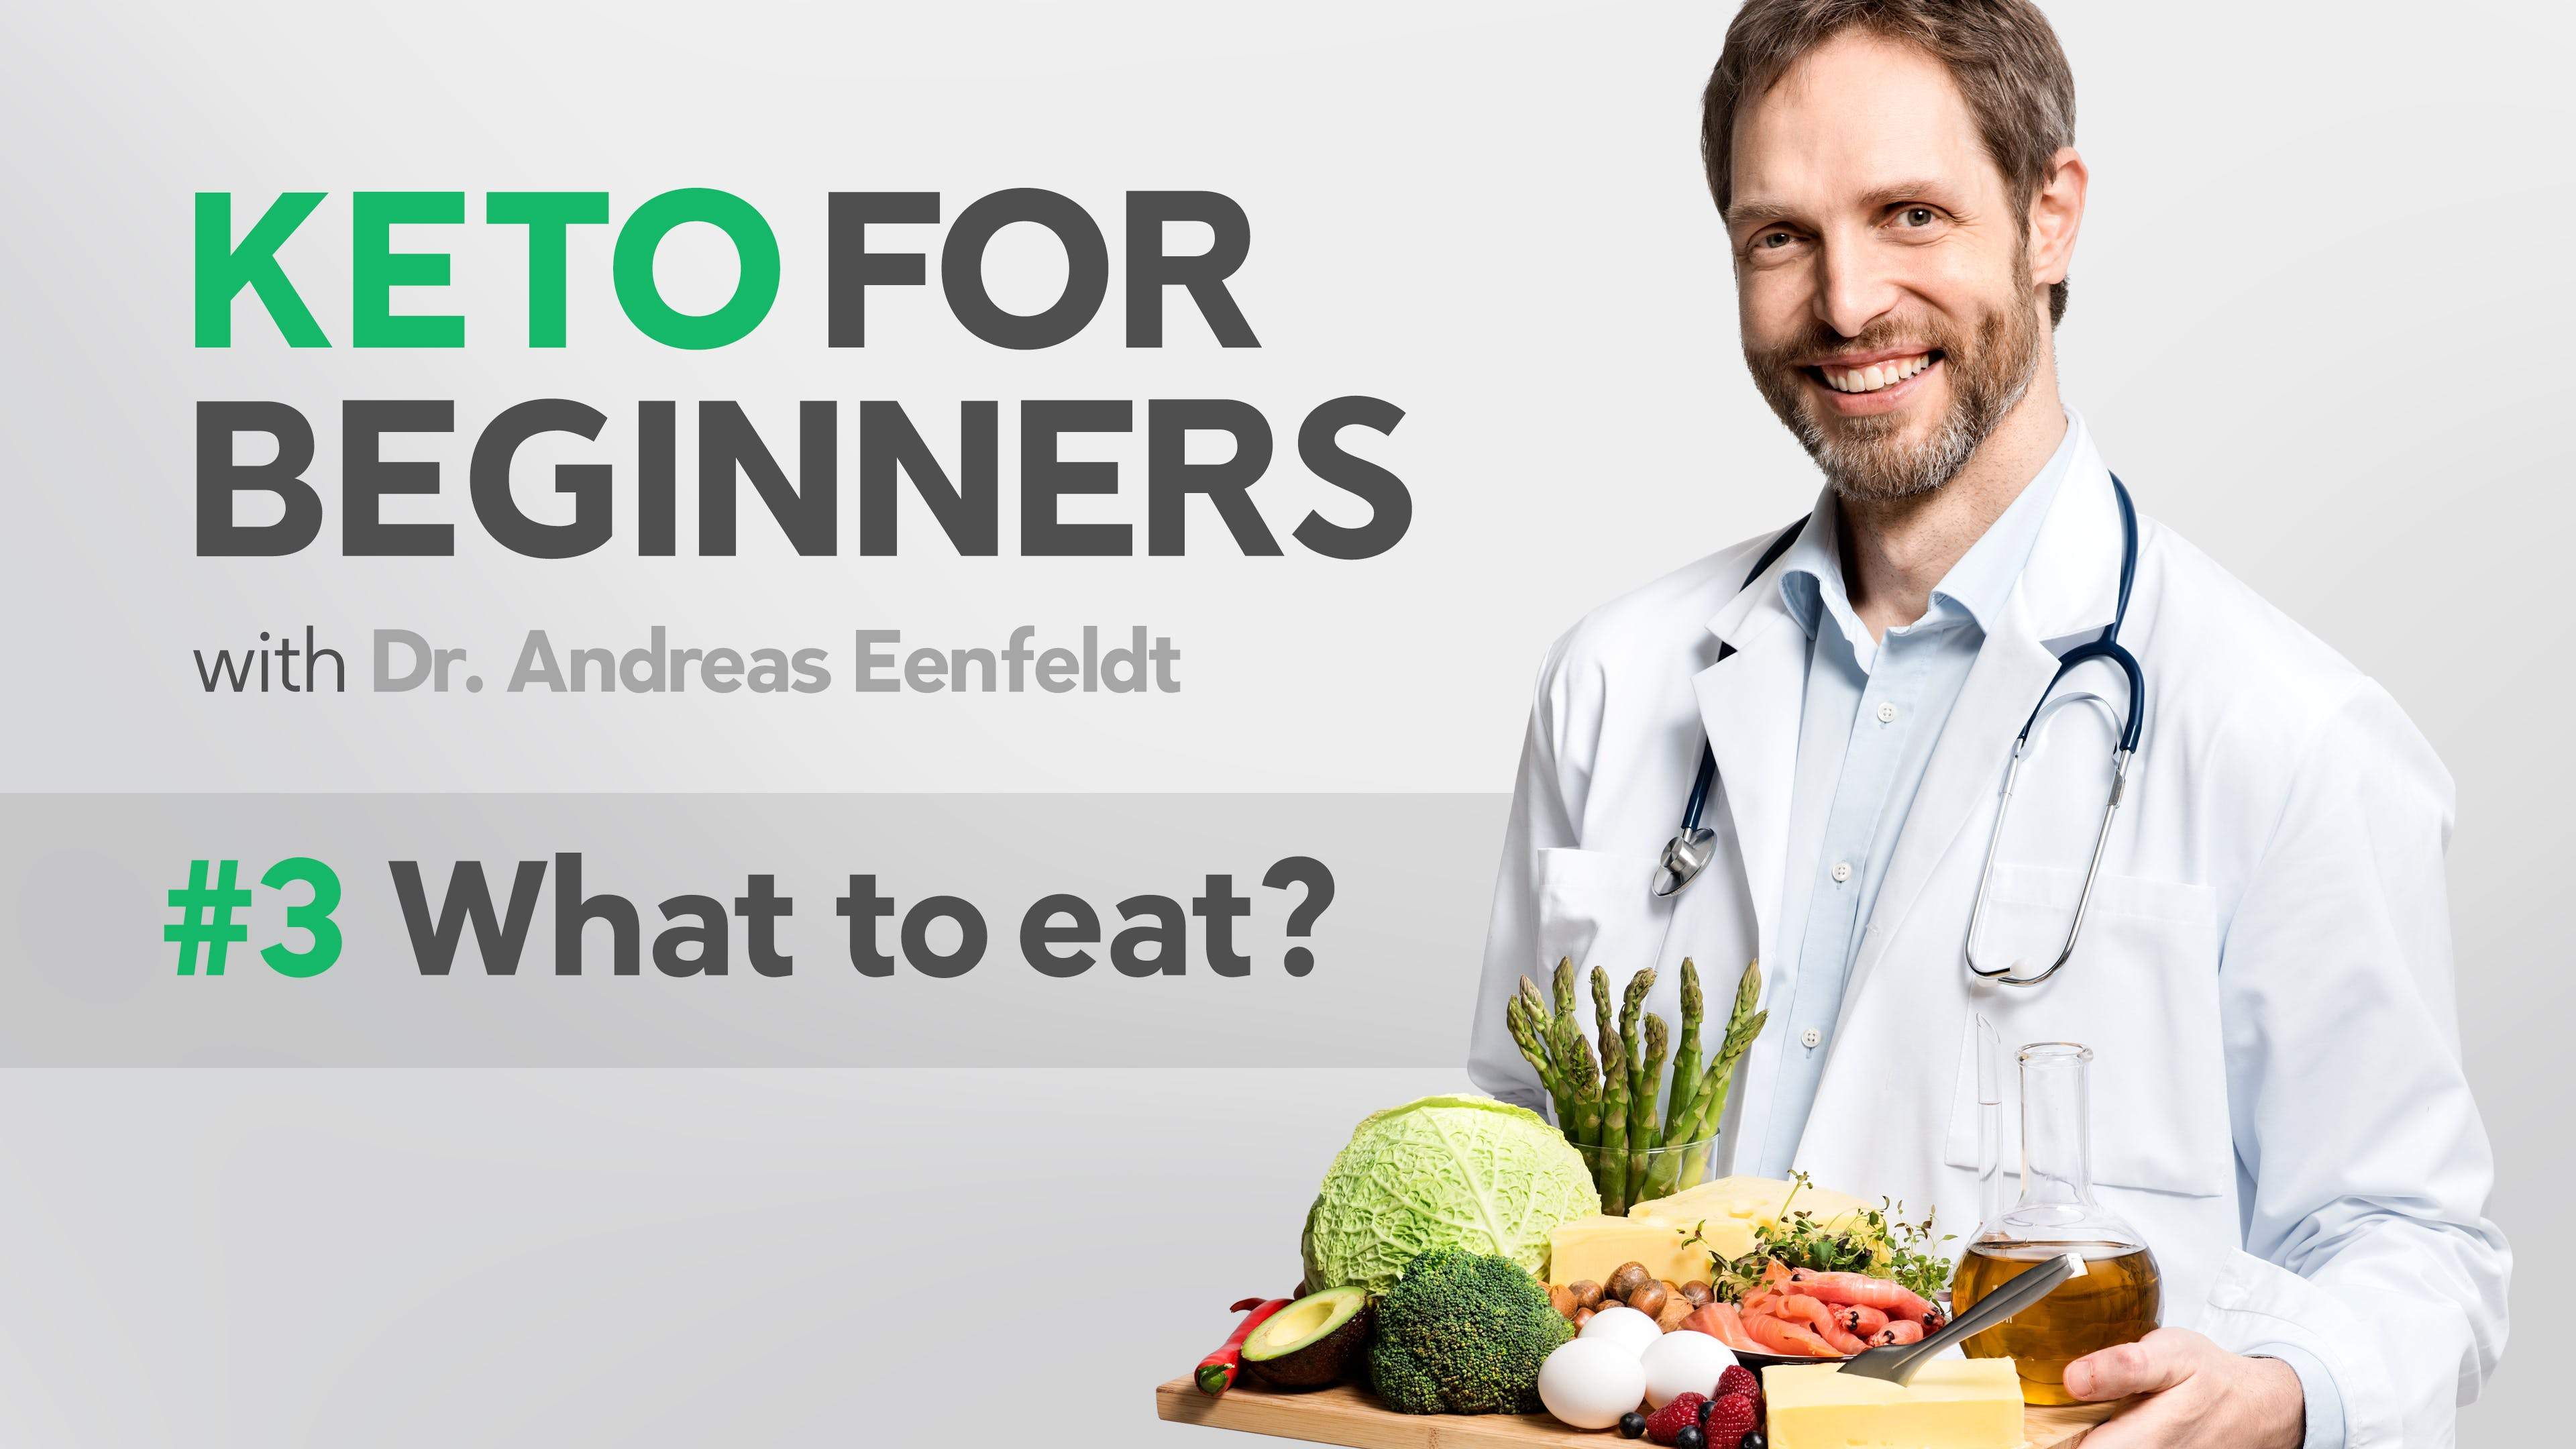 Keto for beginners: What to eat?